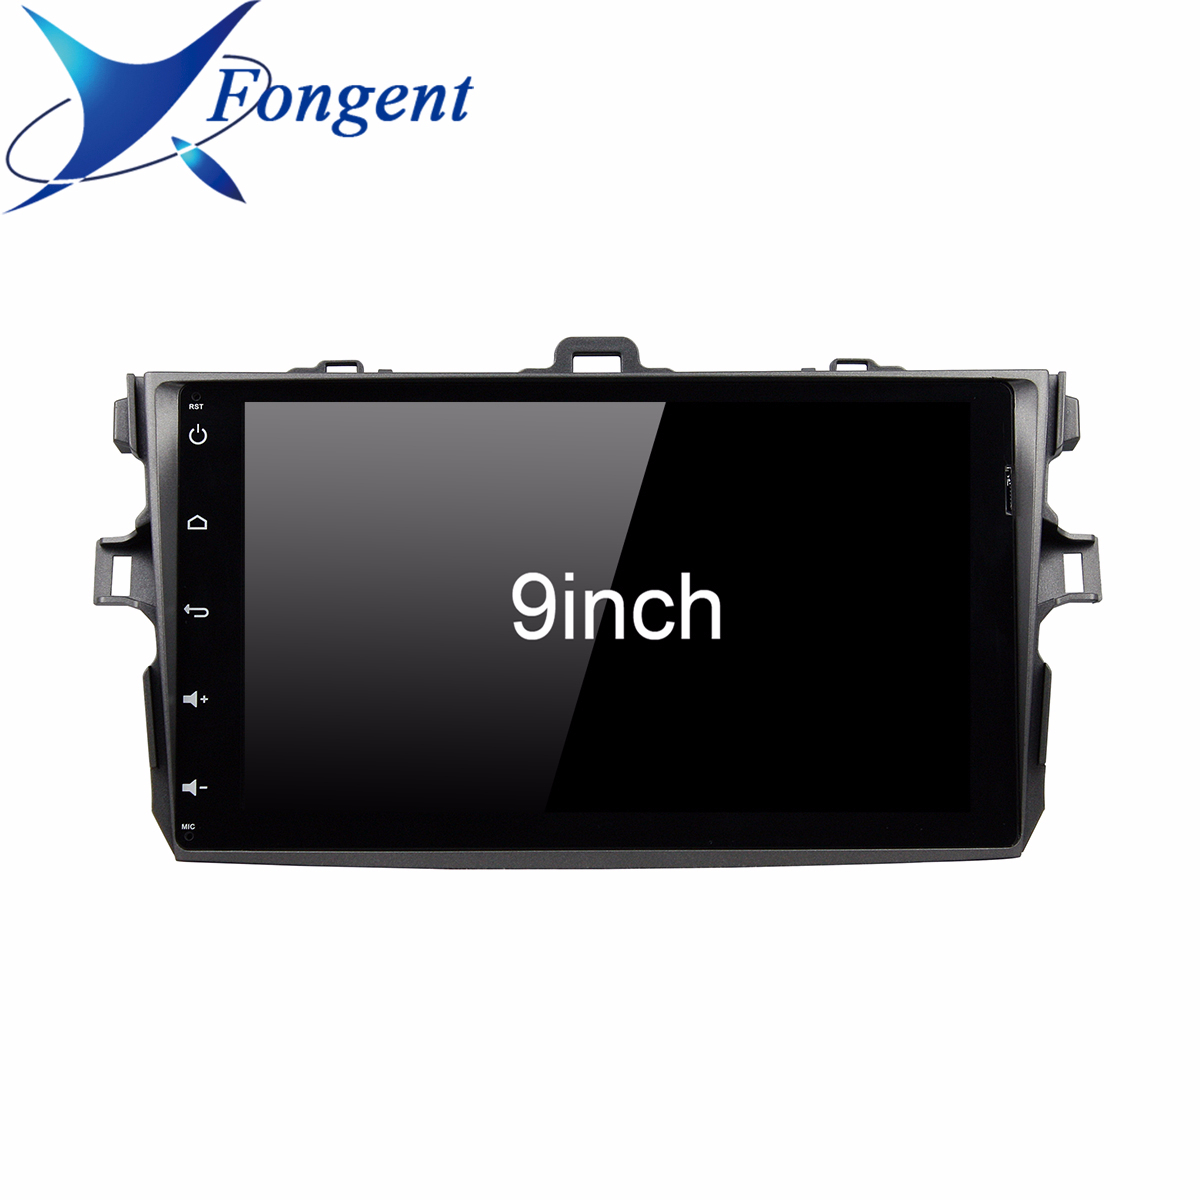 Für Toyota Corolla E140/150 2008 2009 <font><b>2010</b></font> 2011 2012 2013 Auto Android 9.0 Radio Multimedia Player Stereo GPS Navigation <font><b>2</b></font> <font><b>din</b></font> PC image